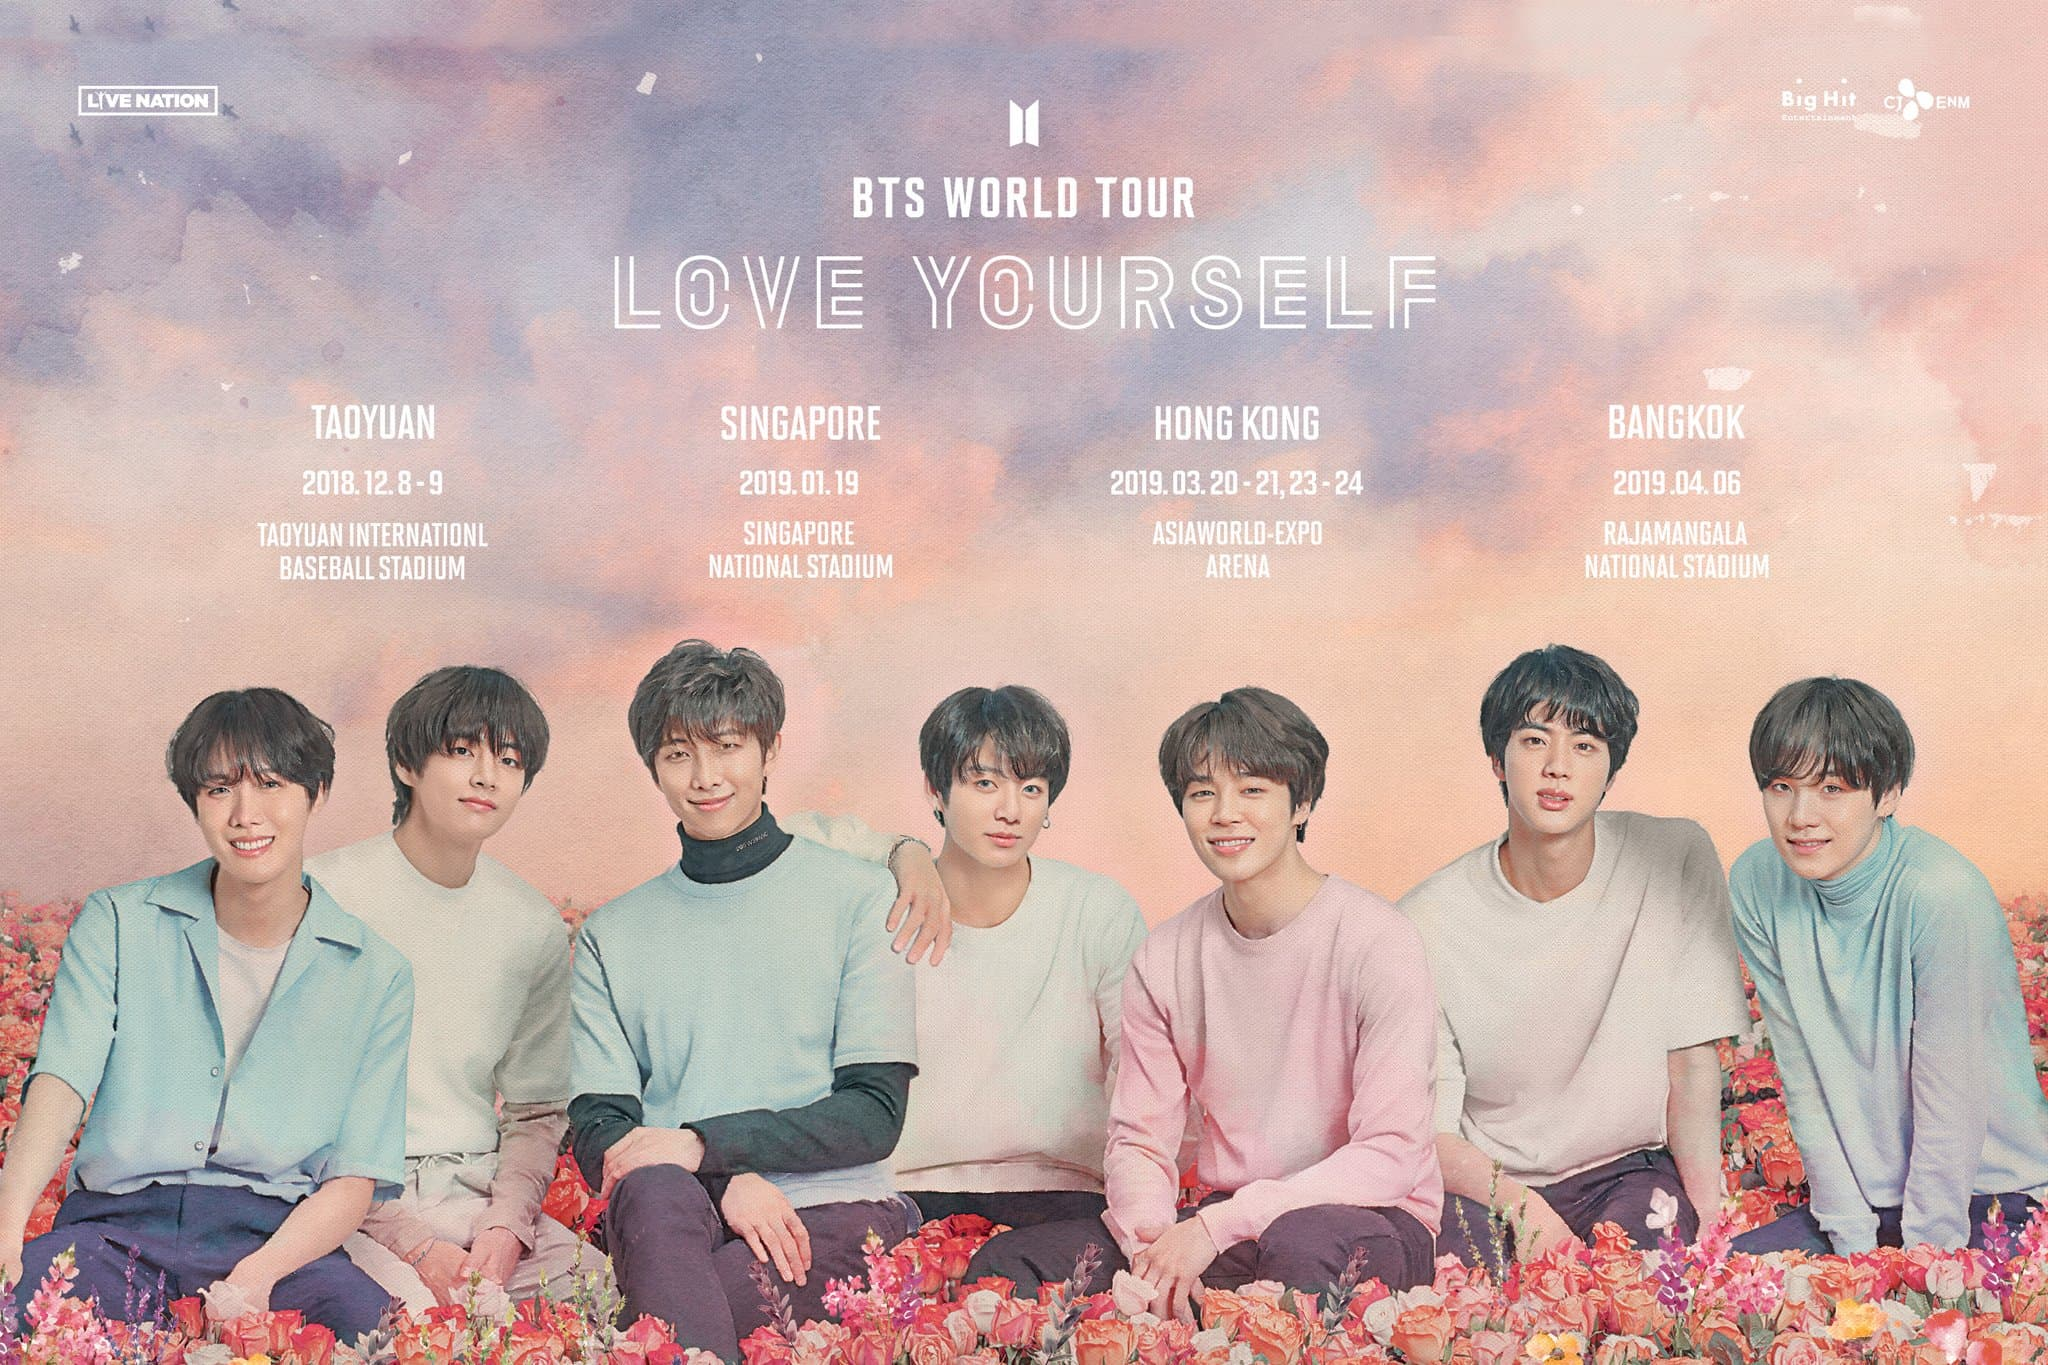 bts love yourself world tour taiwan singapore hong kong bangkok